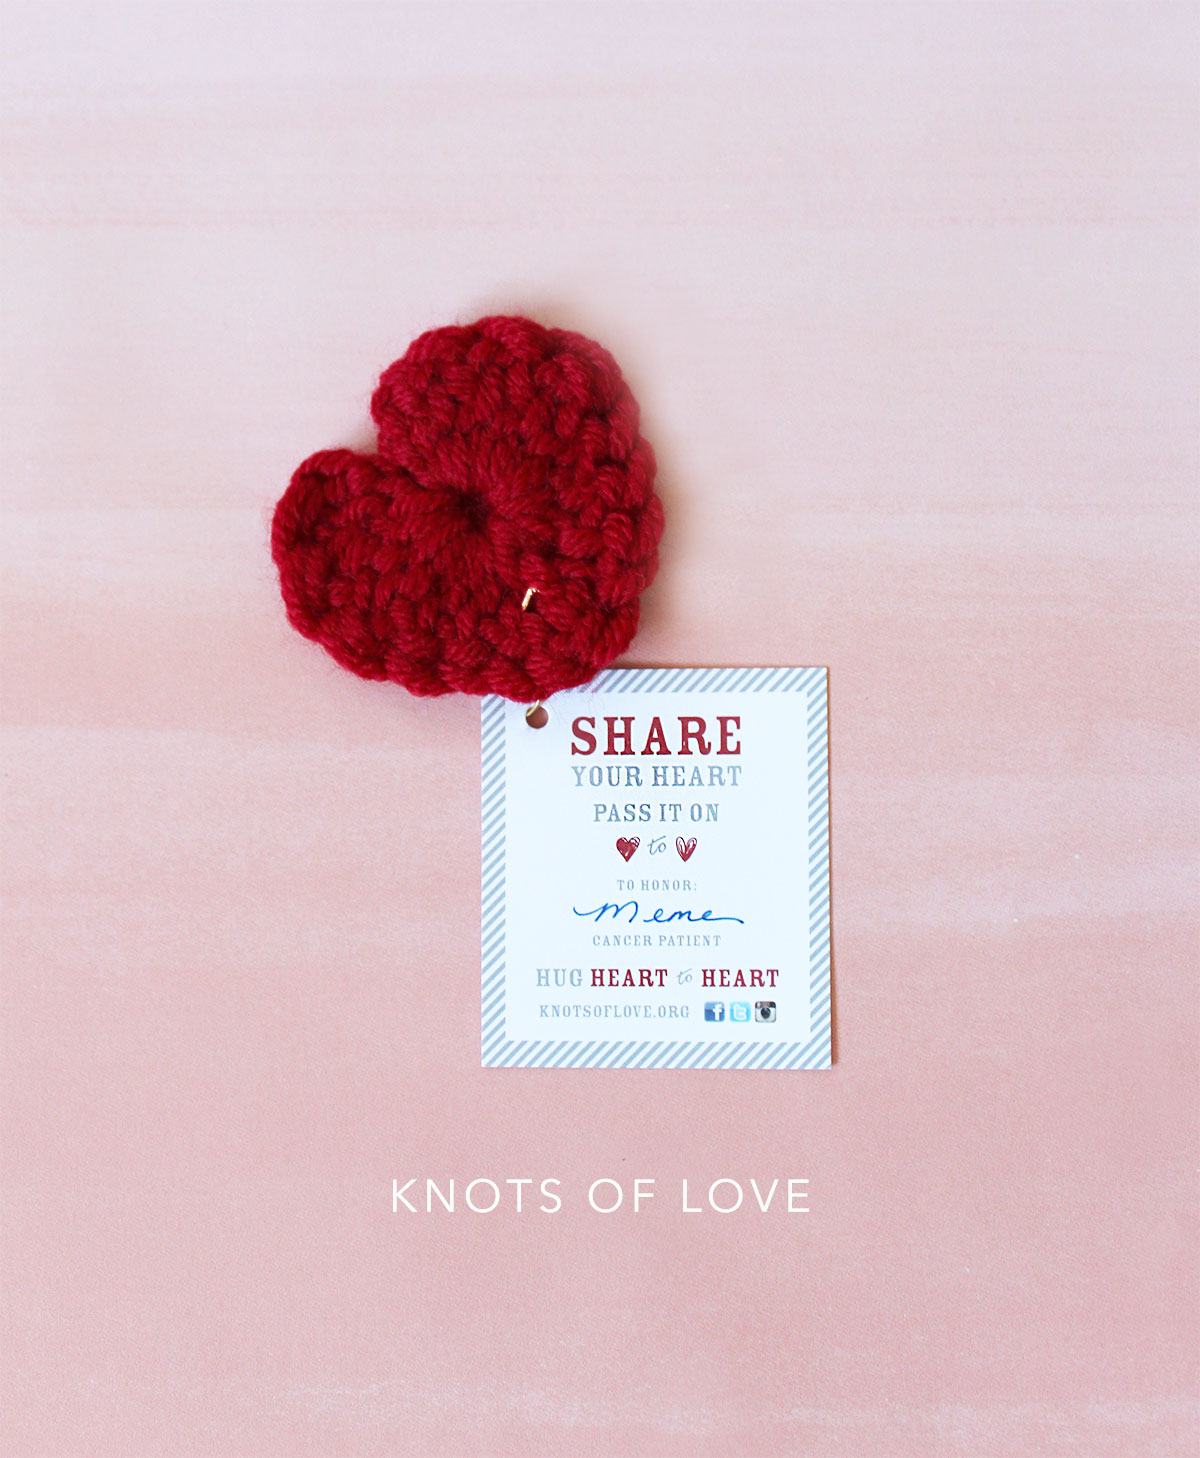 Crocheting & Making a Difference – Knots of Love